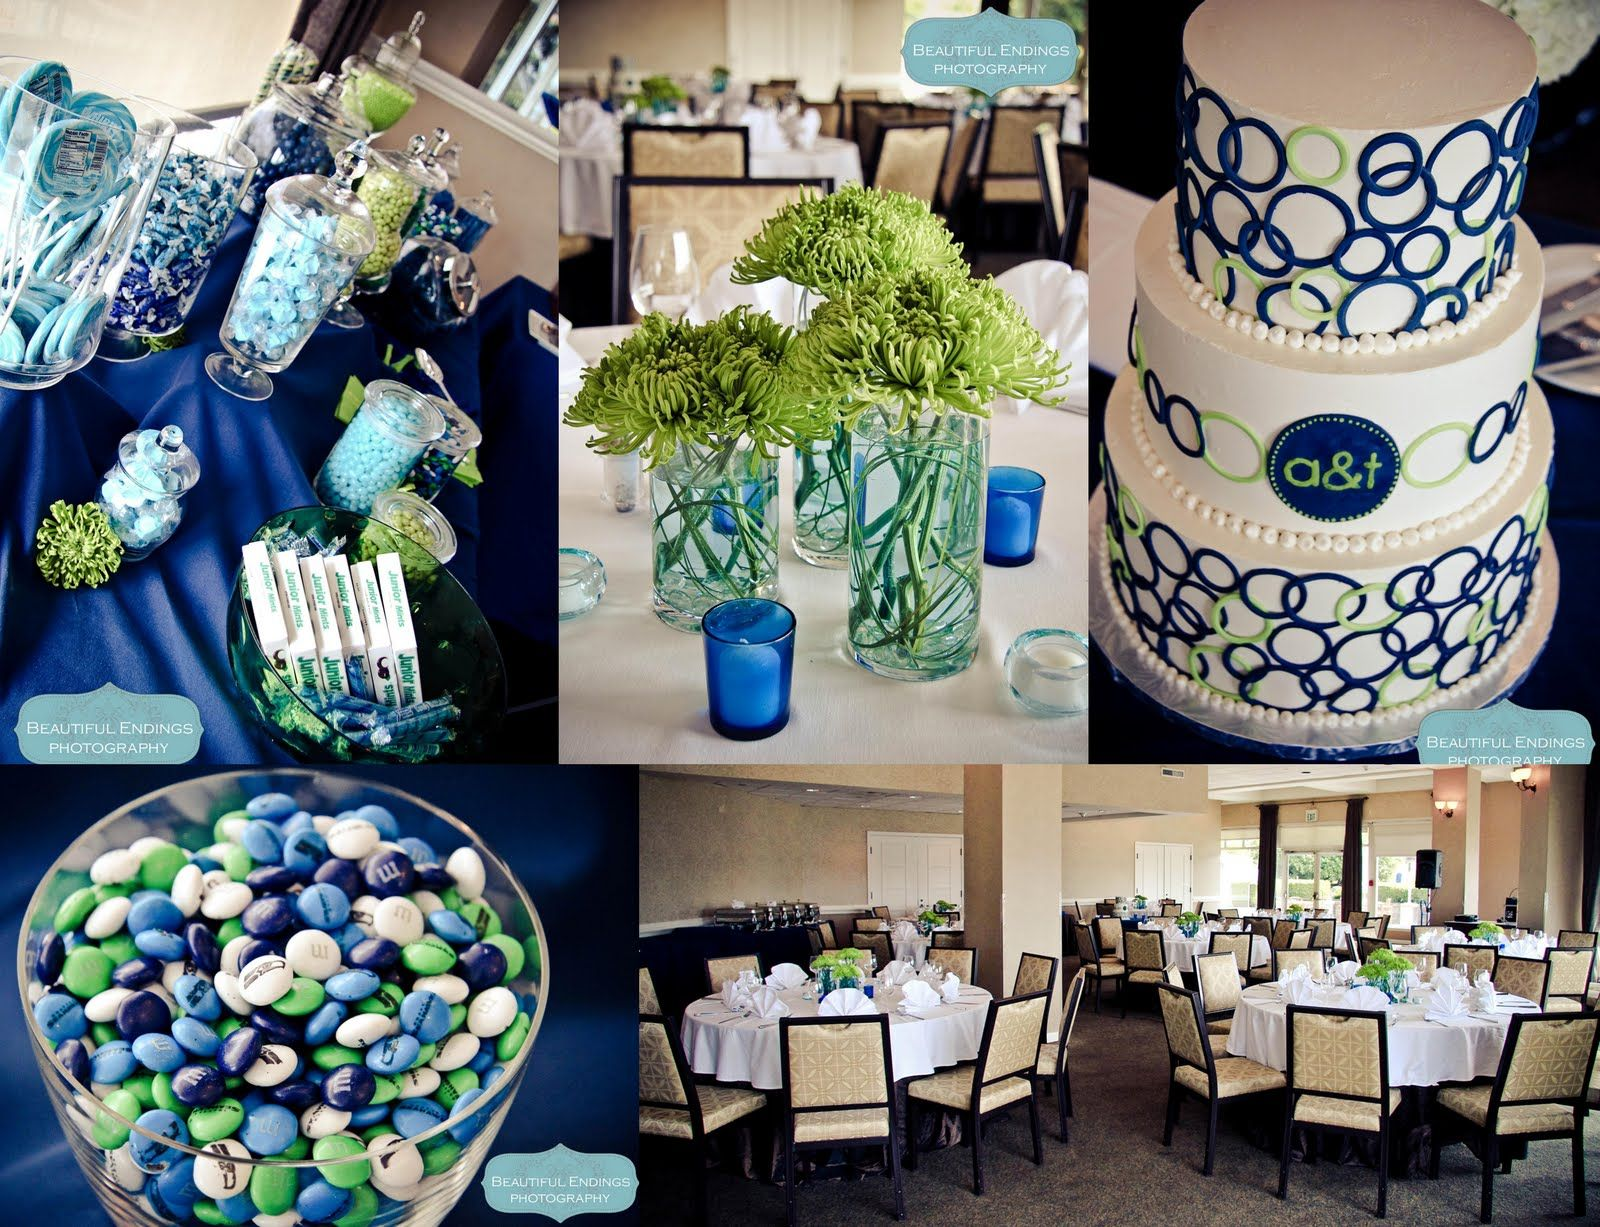 Wedding decorations teal and purple october 2018 TimuAndreag   Chelsea wedding  Pinterest  Weddings